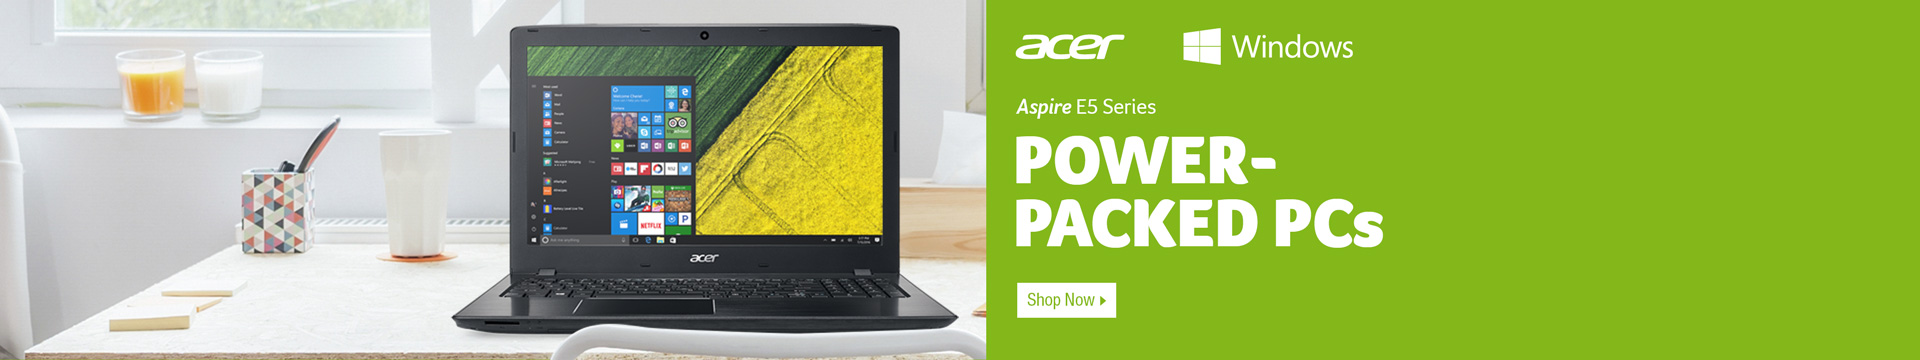 Power-Packed PCs